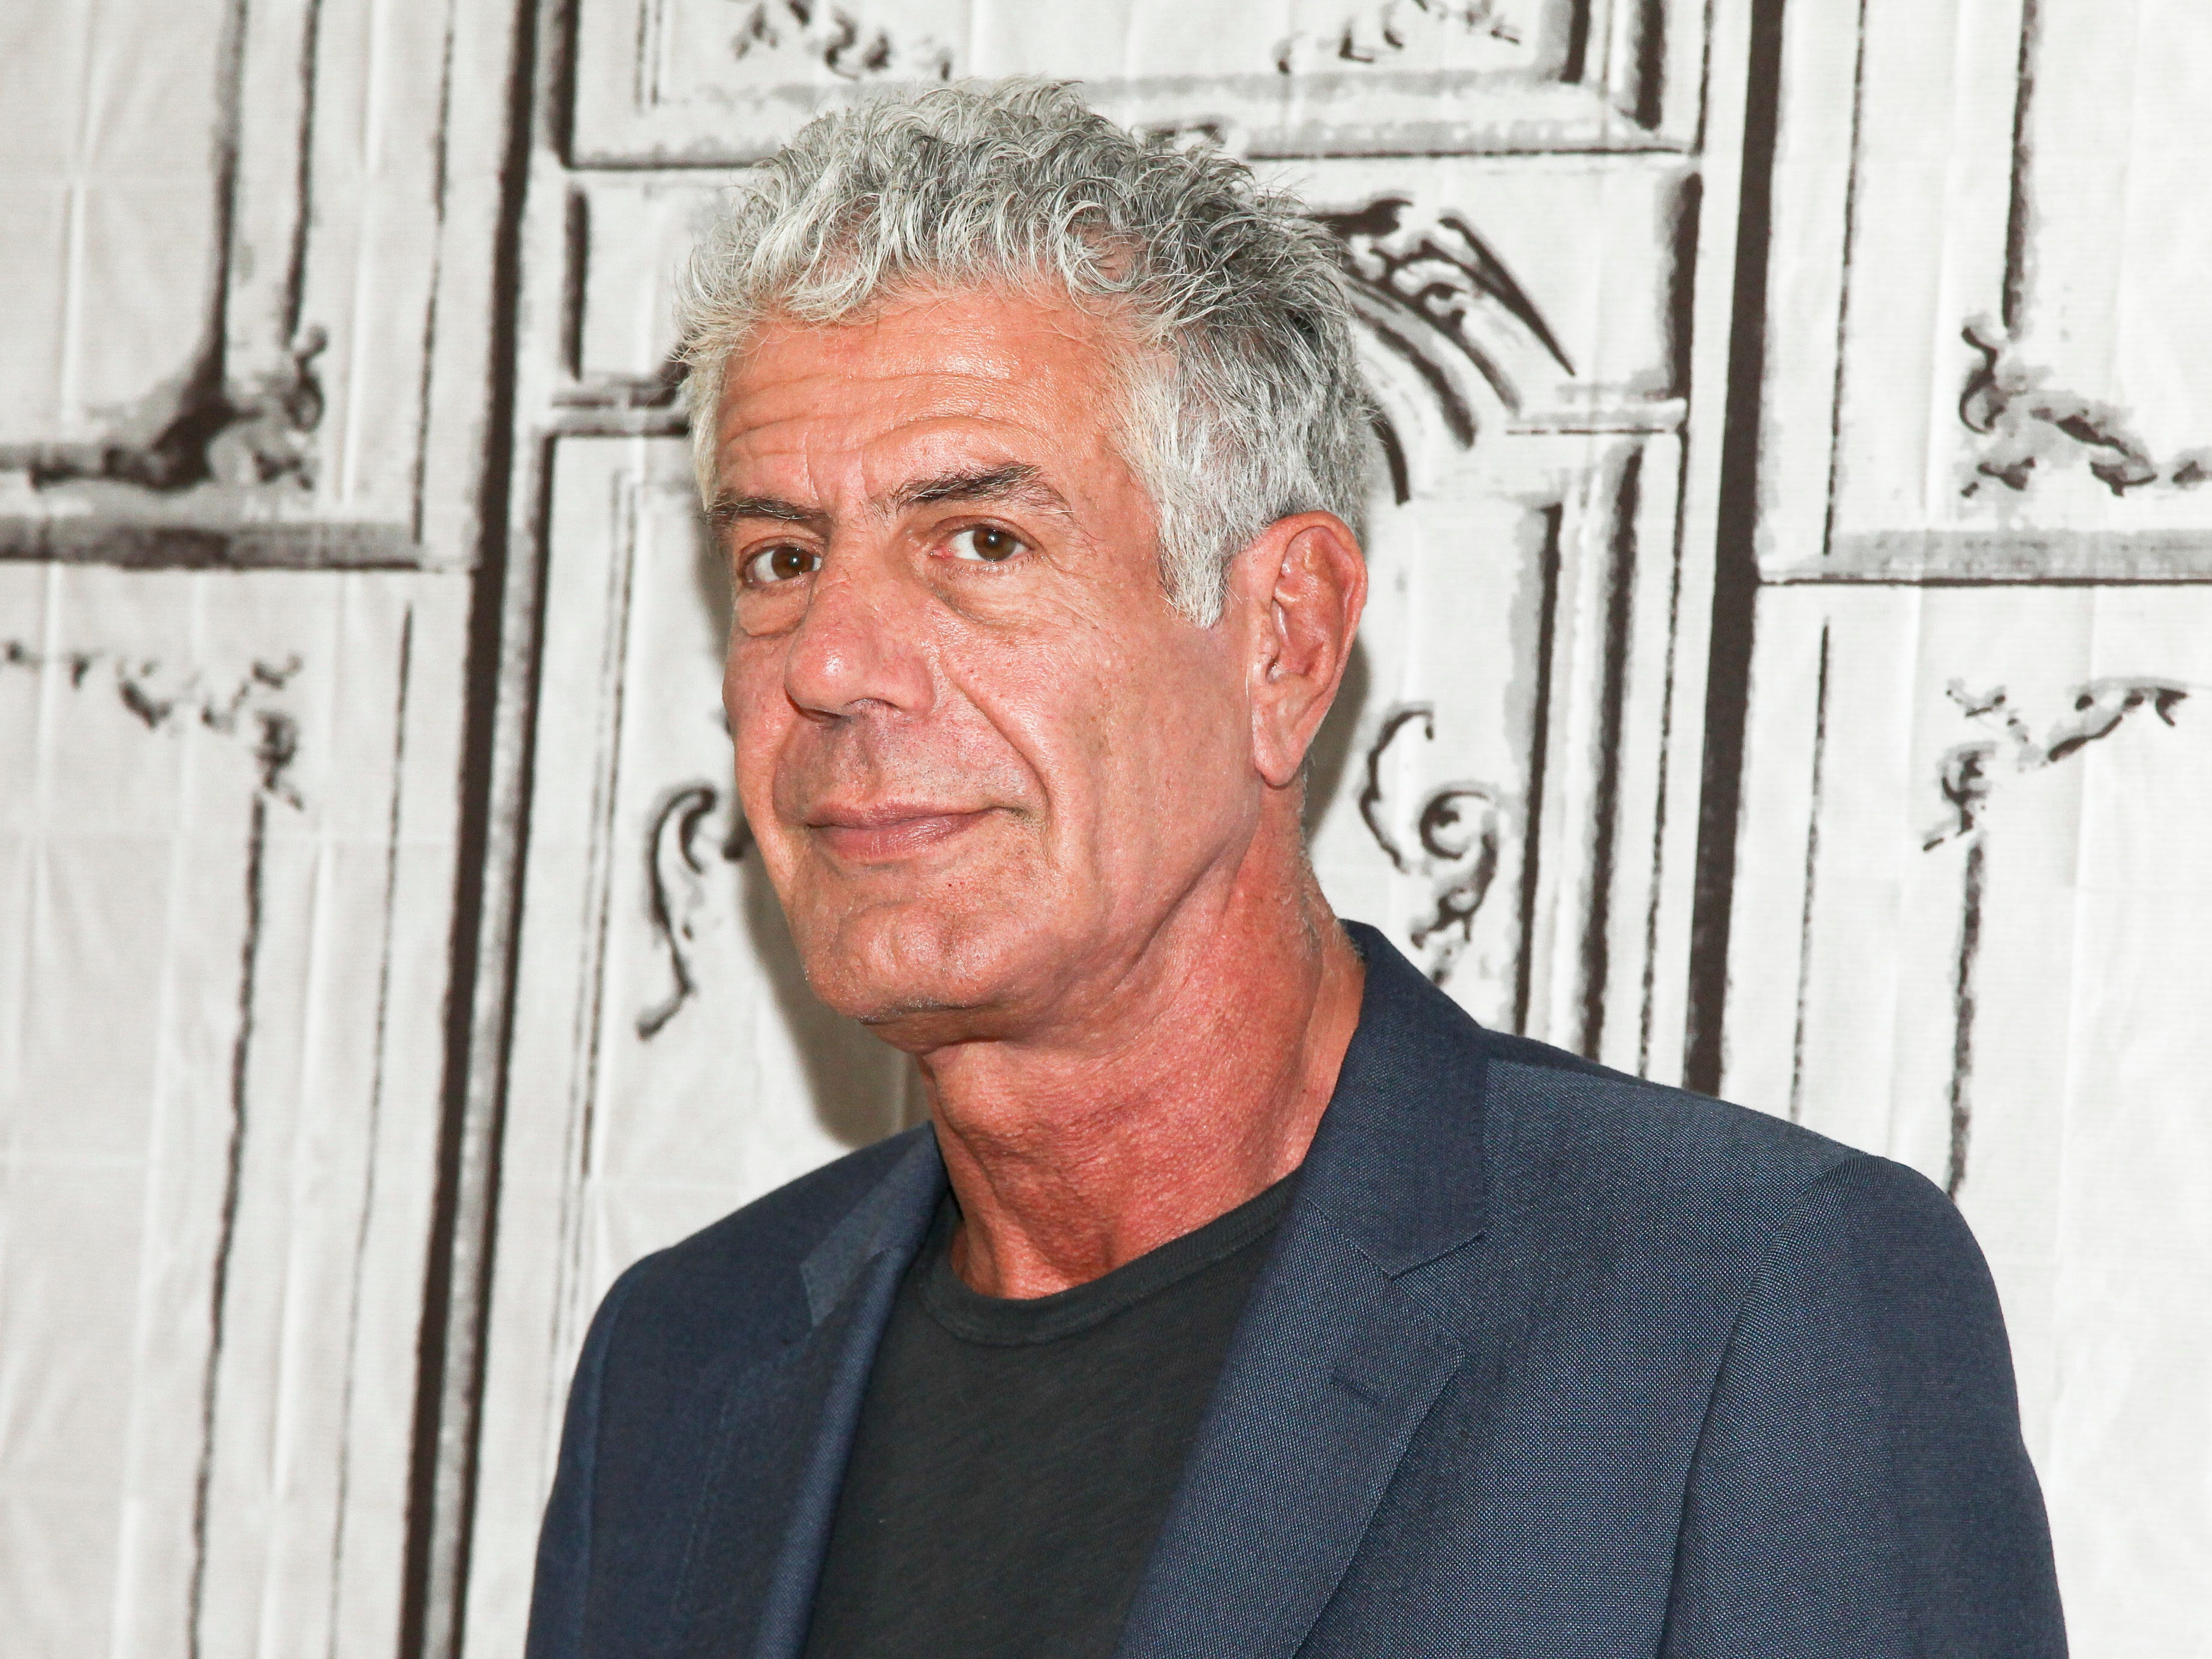 Anthony Bourdain's death: No narcotics in his system at time of death, official says